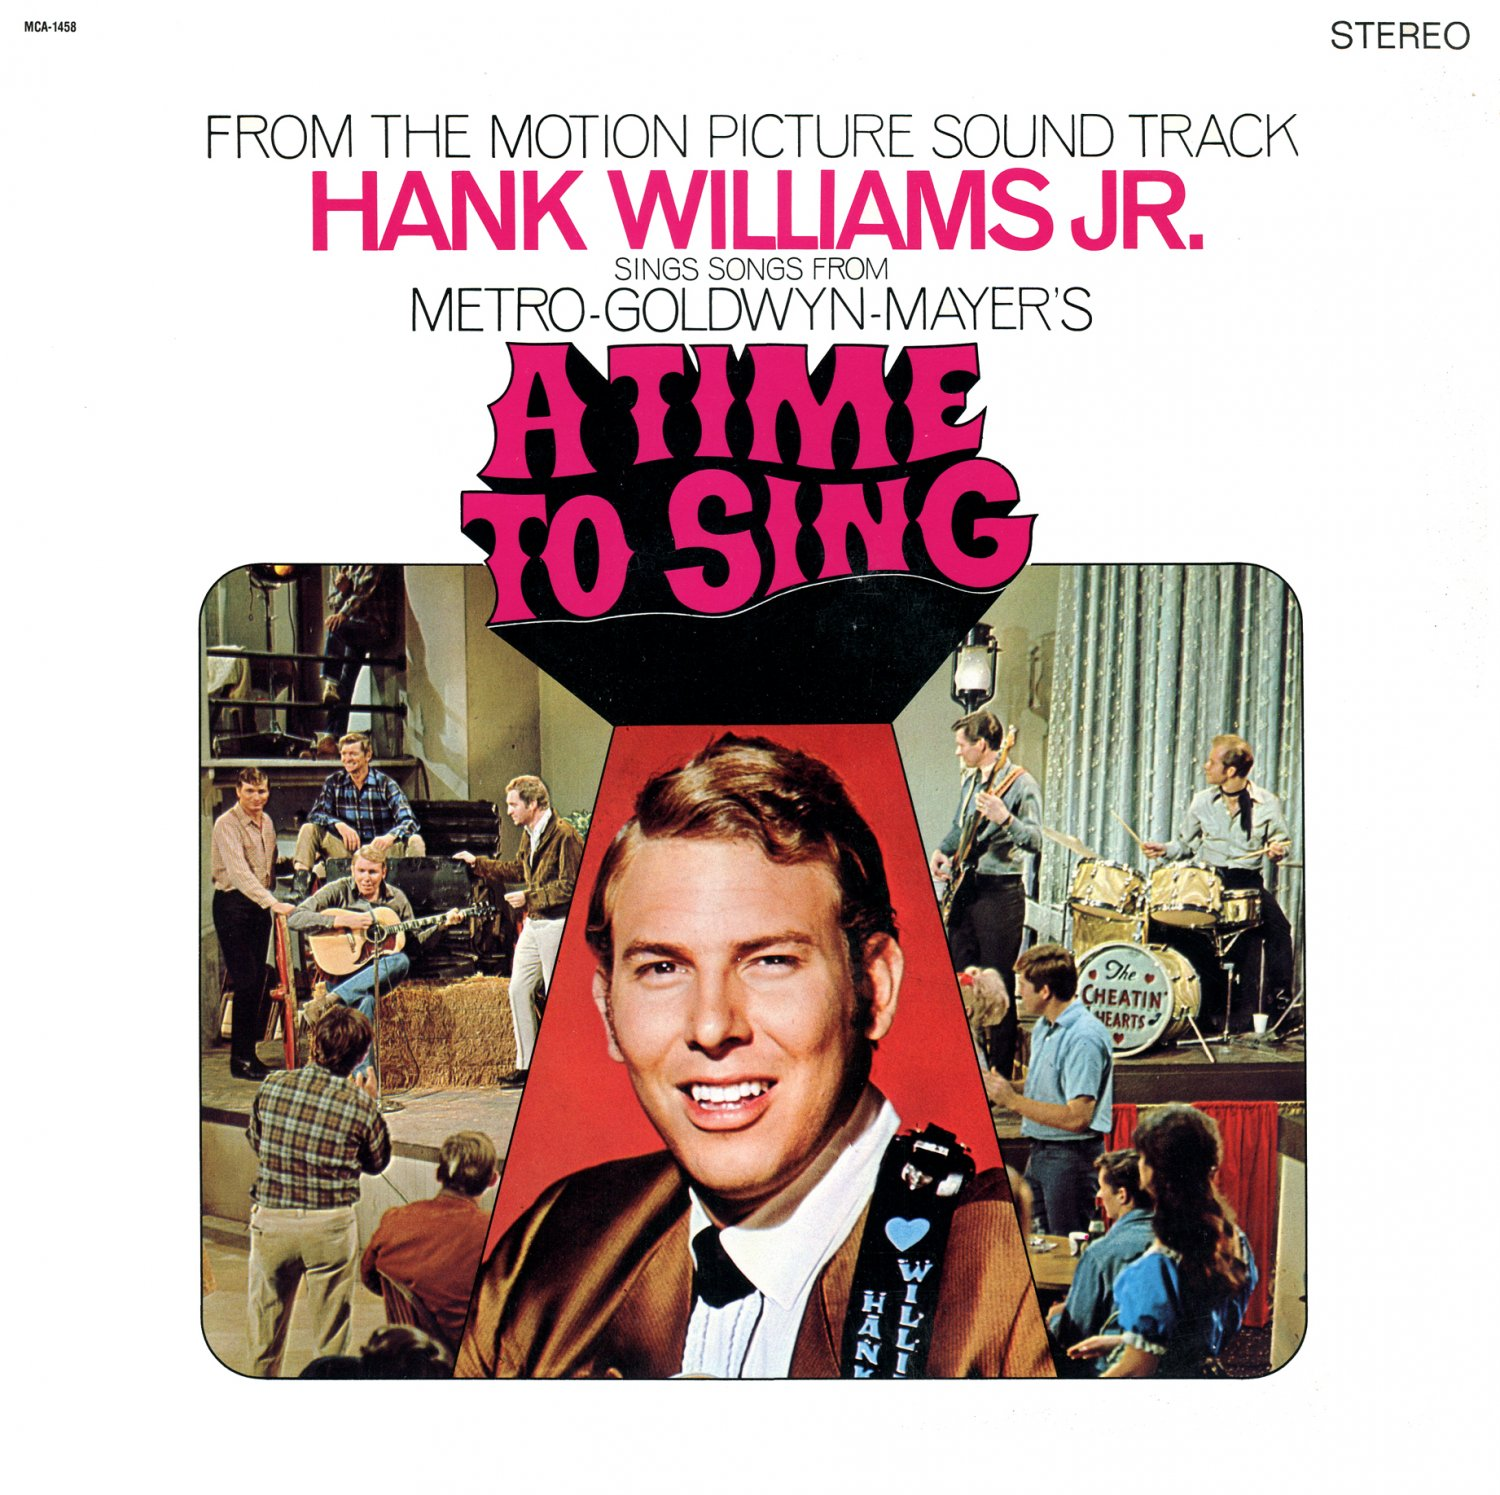 A Time To Sing - Original Soundtrack, Hank Williams Jr. OST LP/CD